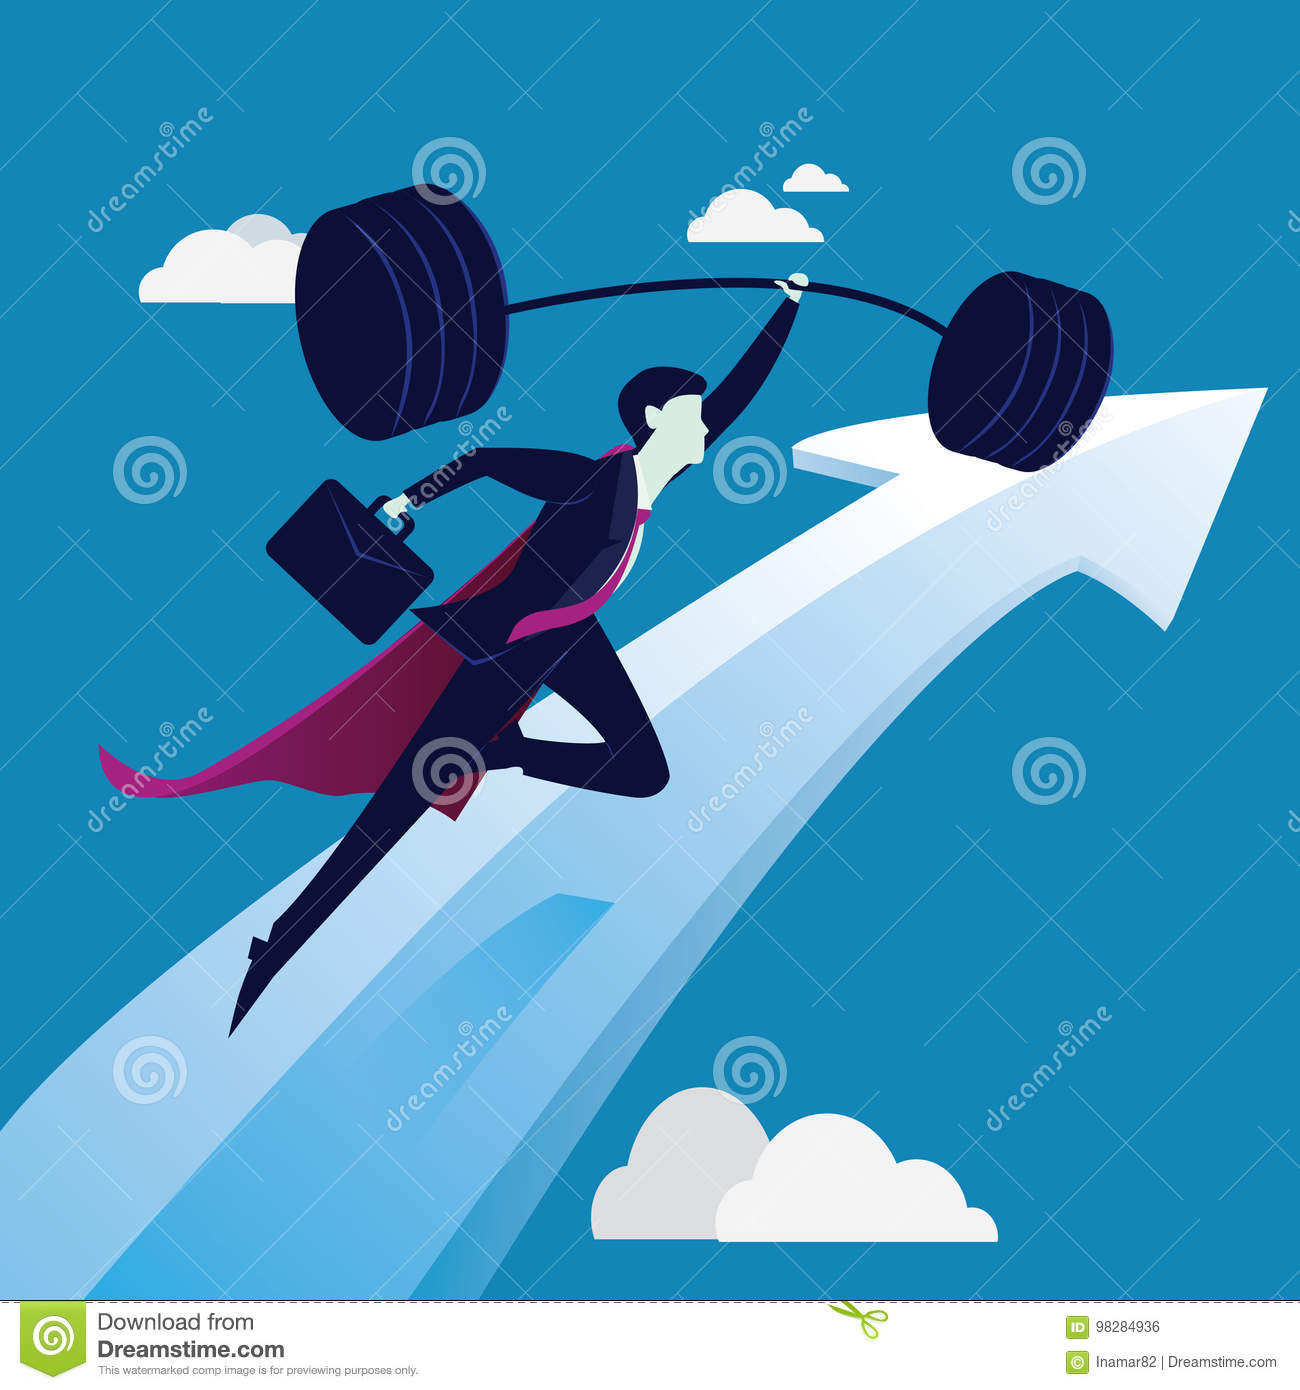 Business Power Strength Concept Stock Vector - Illustration